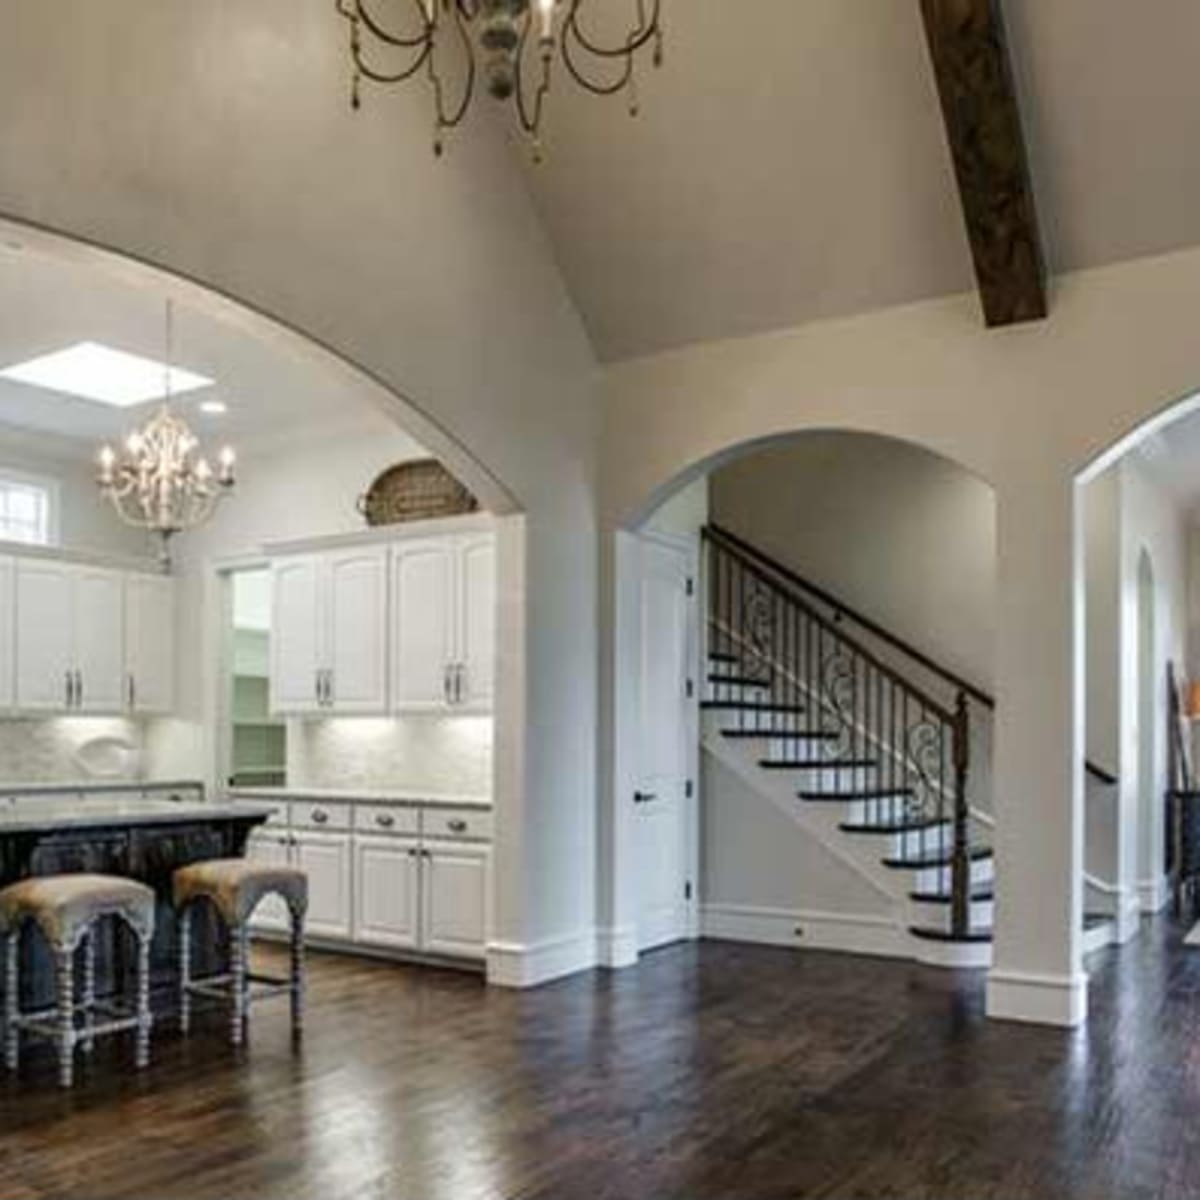 Kitchen Design Centers Dallas Tx: Top North Texas Builders Lay Out All The Trendy Home